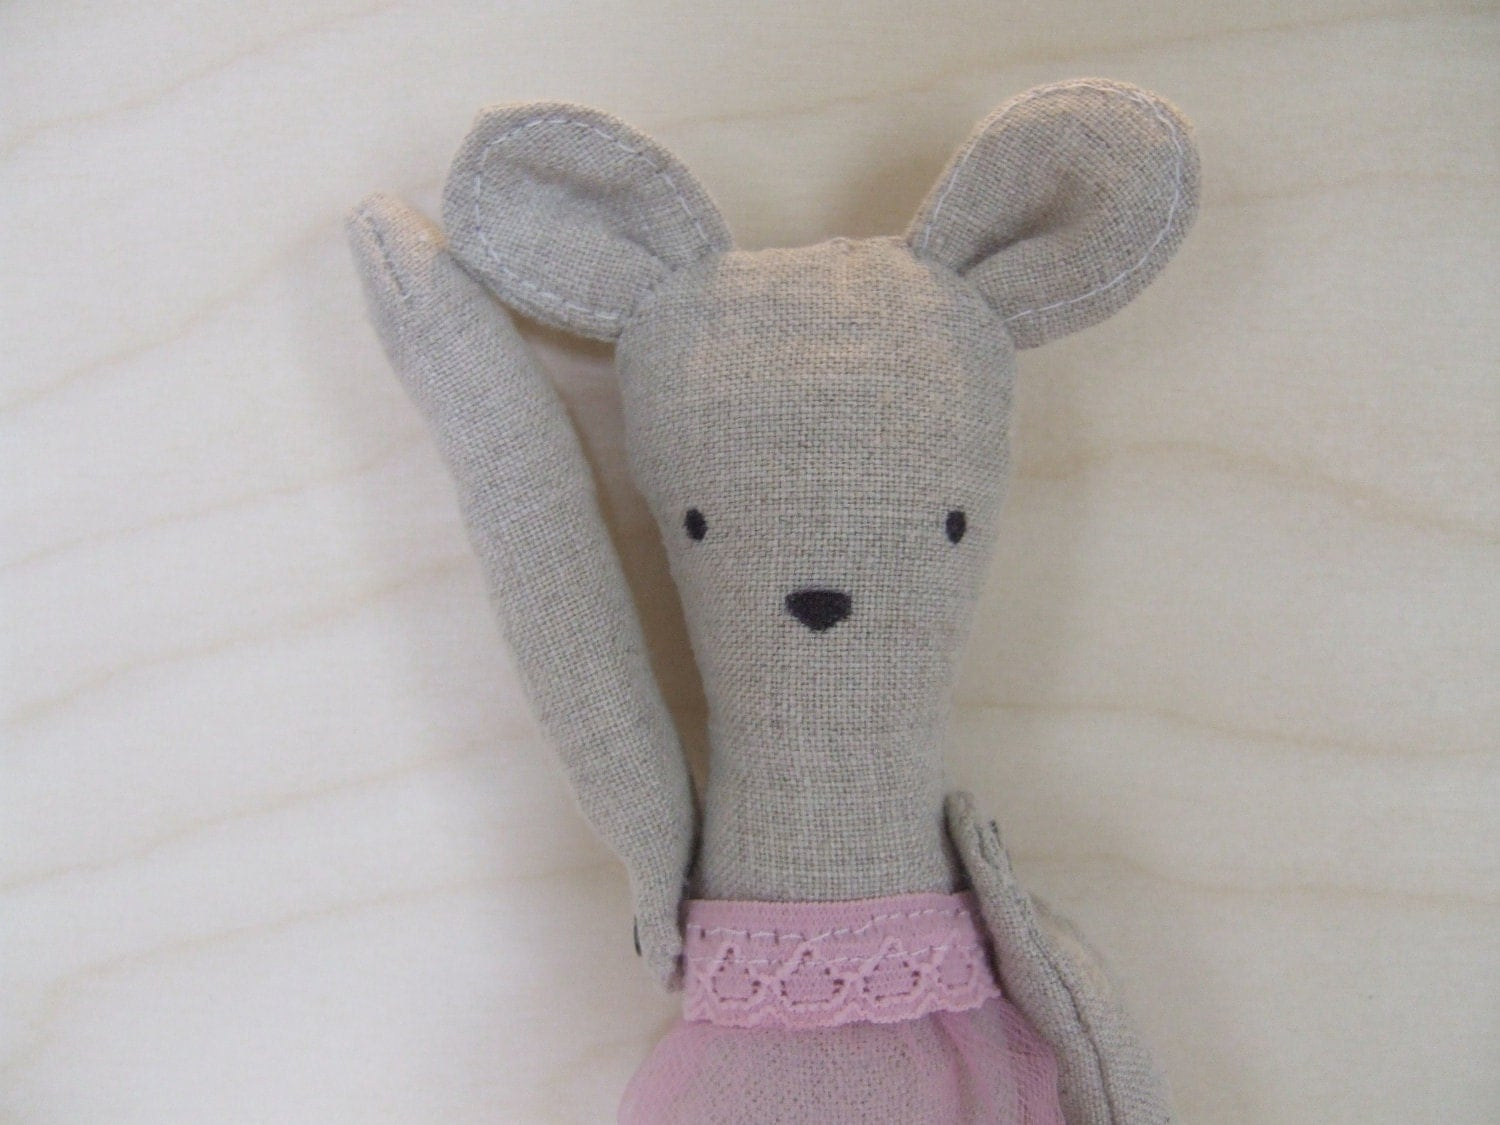 Penelope the linen mouse doll goes to sleep in her rose pink nightie. - mimiandlu